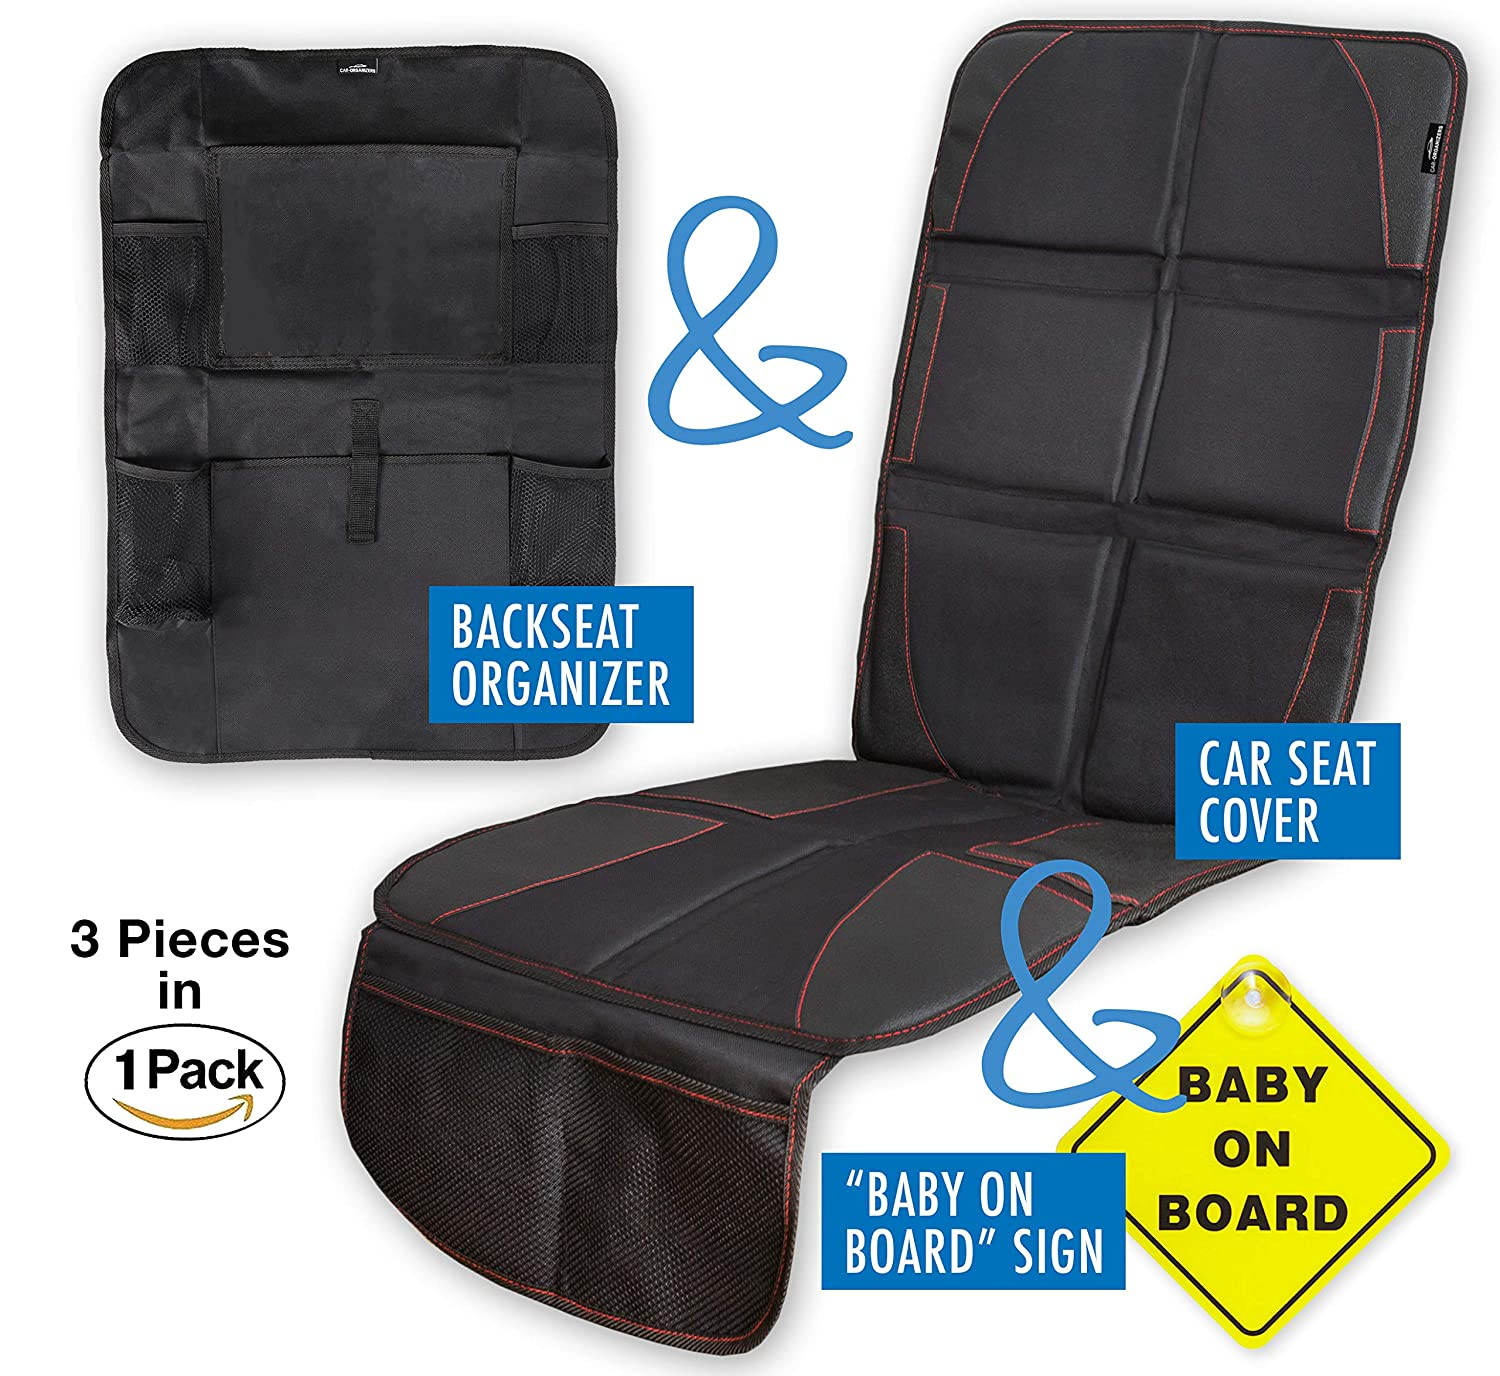 Car Seat Protector with Thick Padding for Under Baby Booster + Backseat Organizer& Kick Mat Protector with 5 Pockets, iPad and Tablet Holder + Baby on Board Sign car-organizer